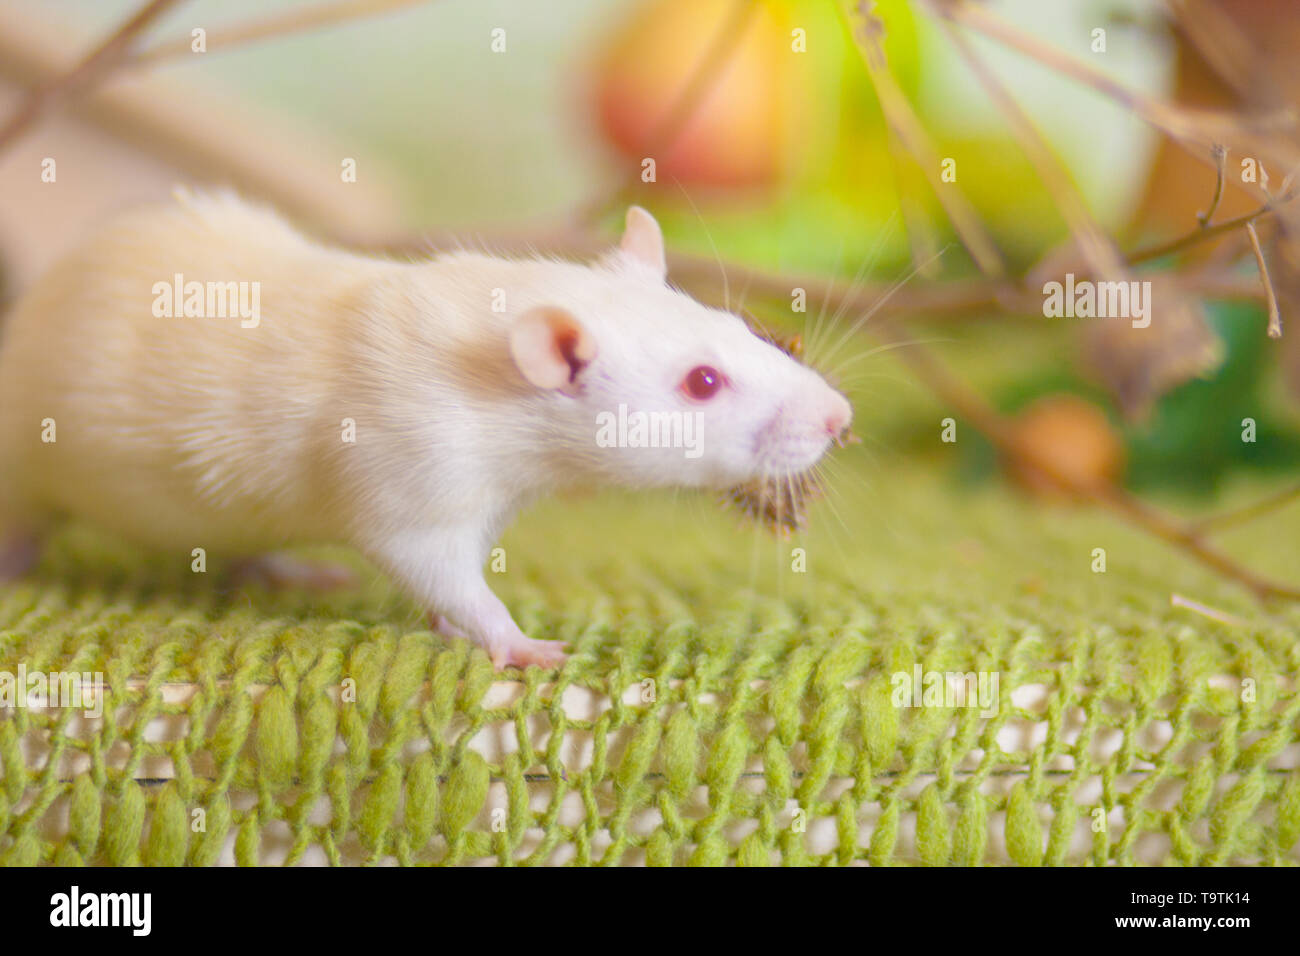 Beautiful mouse on green background. White rat standing on the grass. Light decorative rodent. - Stock Image